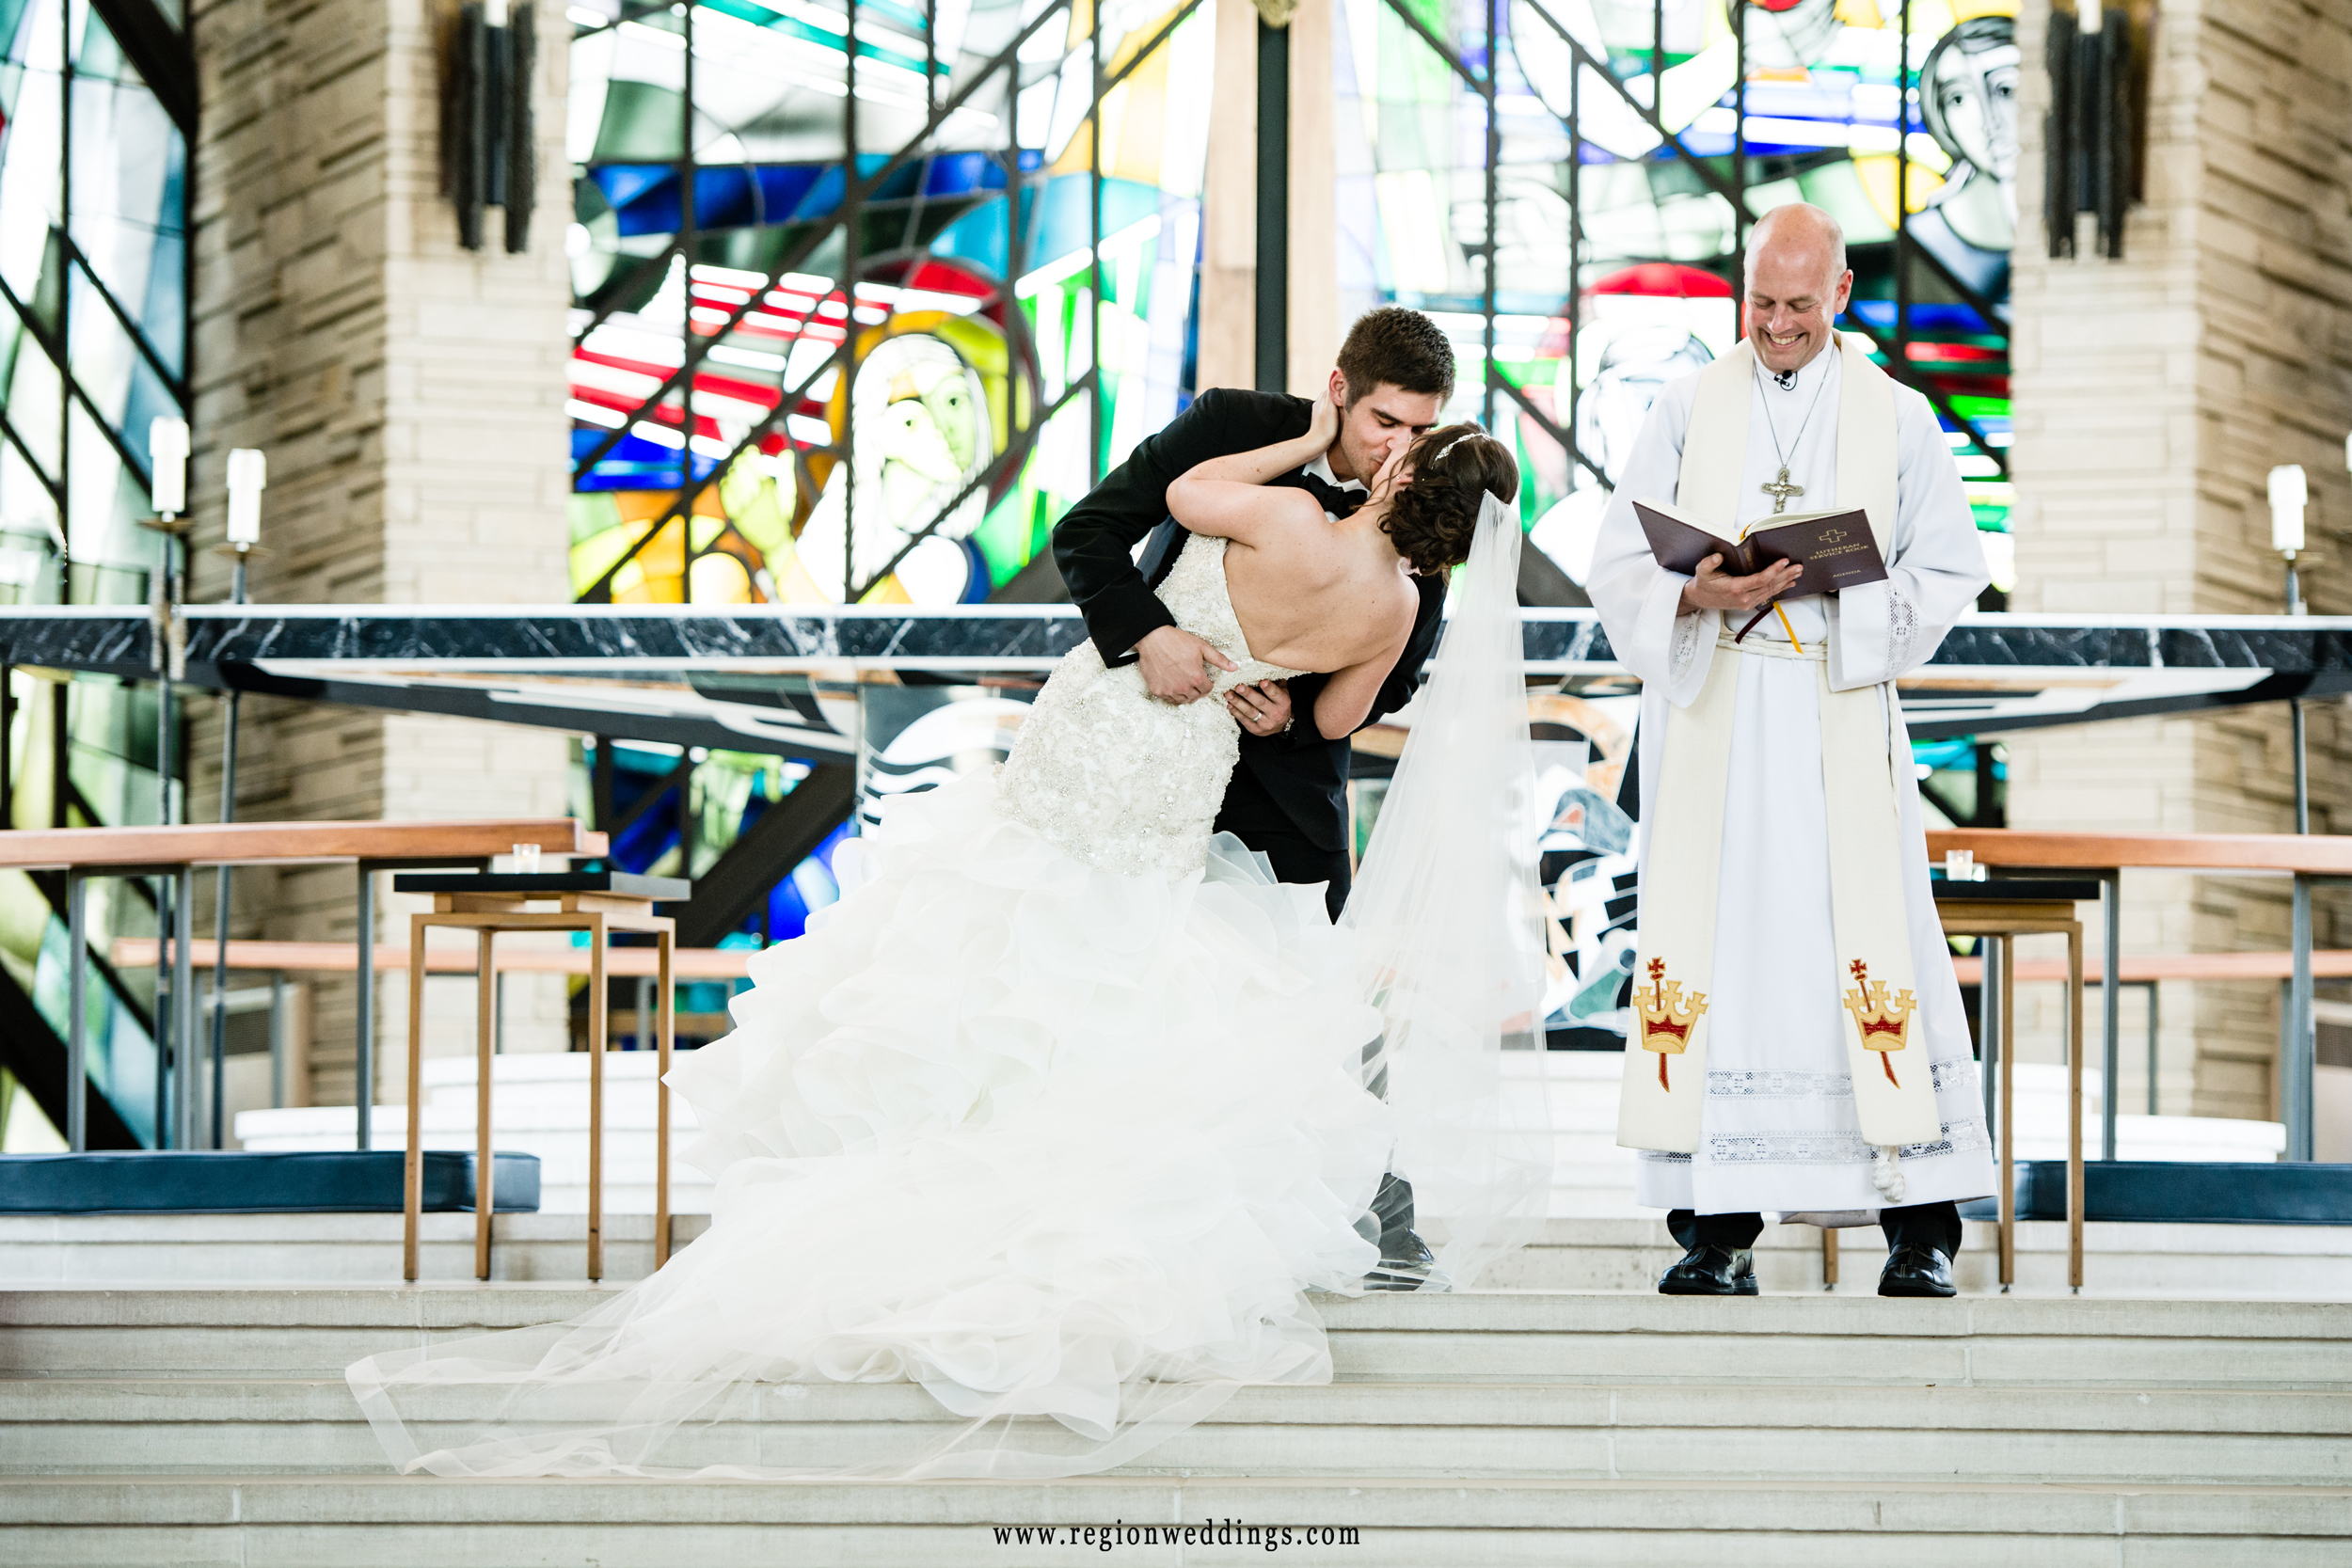 The groom dips his bride at the altar.